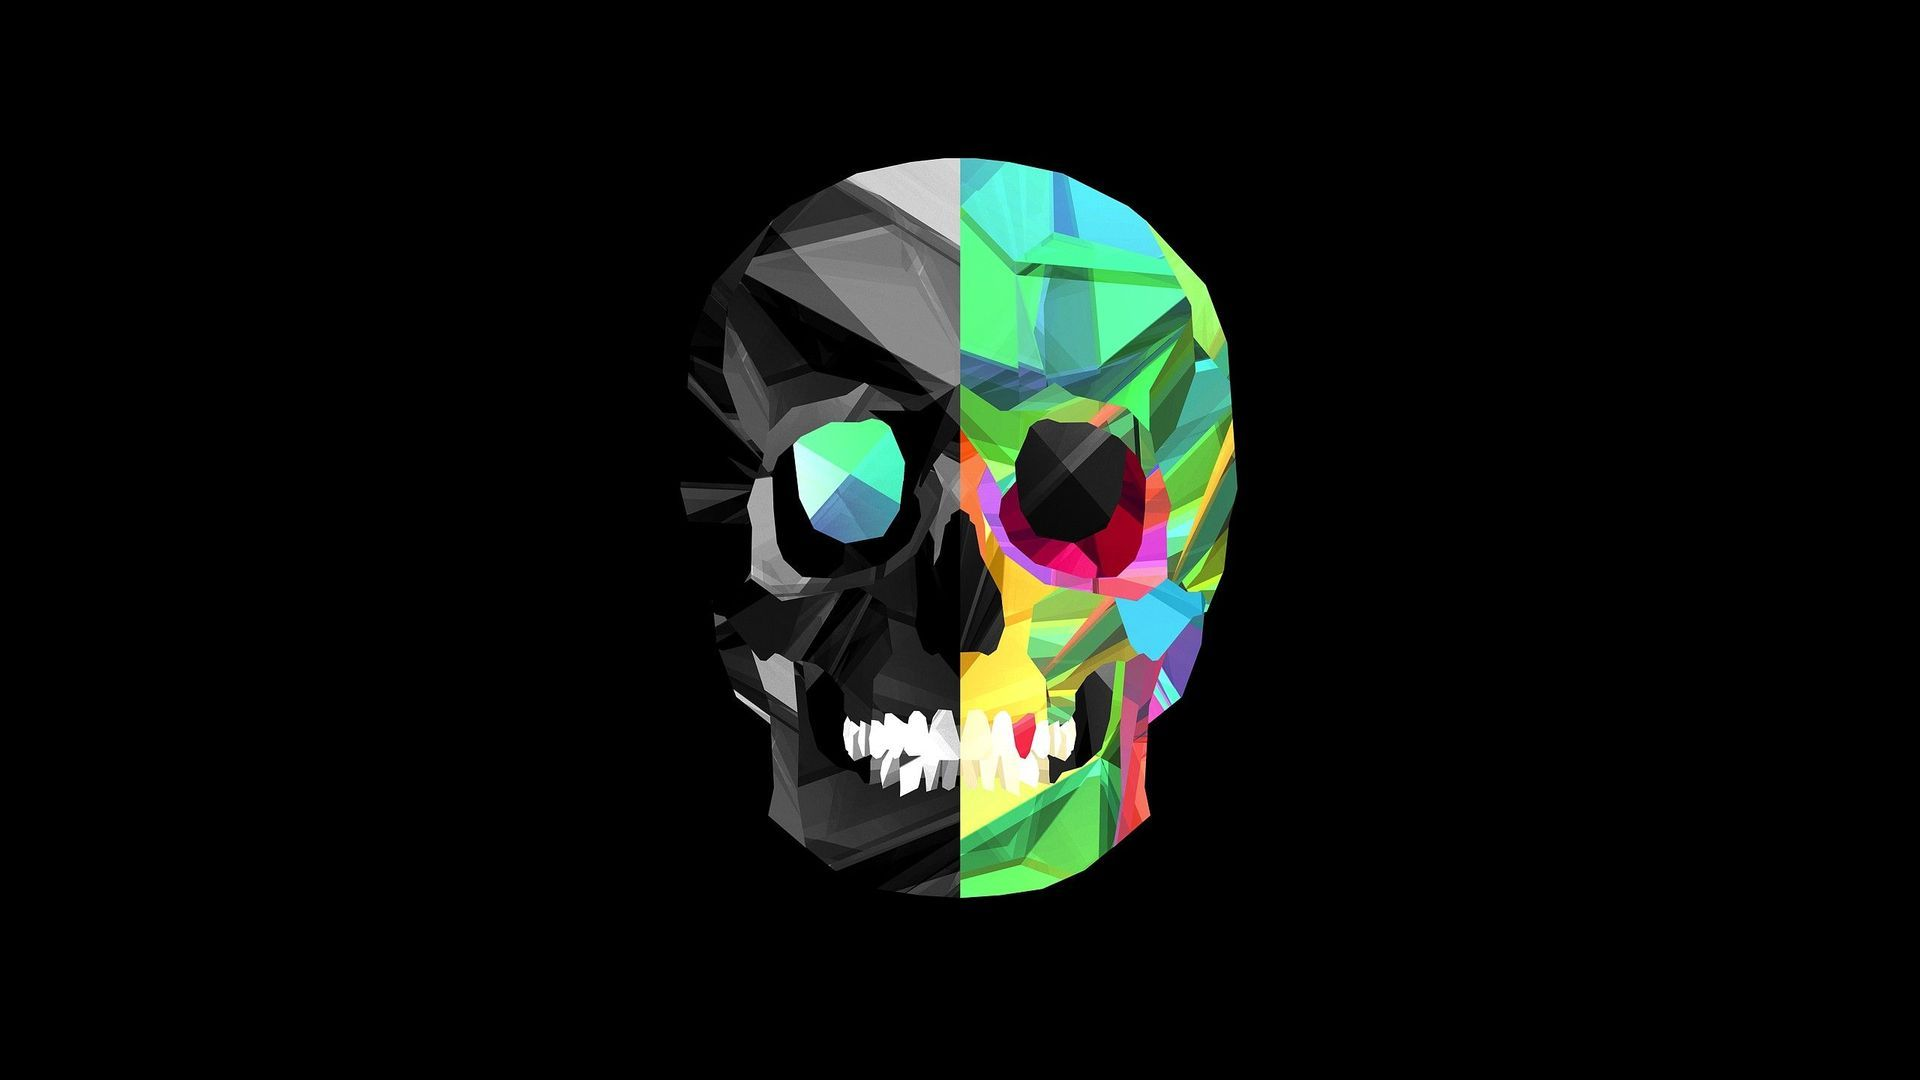 Skull Wallpapers High Quality Resolution Is Cool Wallpapers Skull Wallpaper Cool Desktop Wallpapers Hd Skull Wallpapers